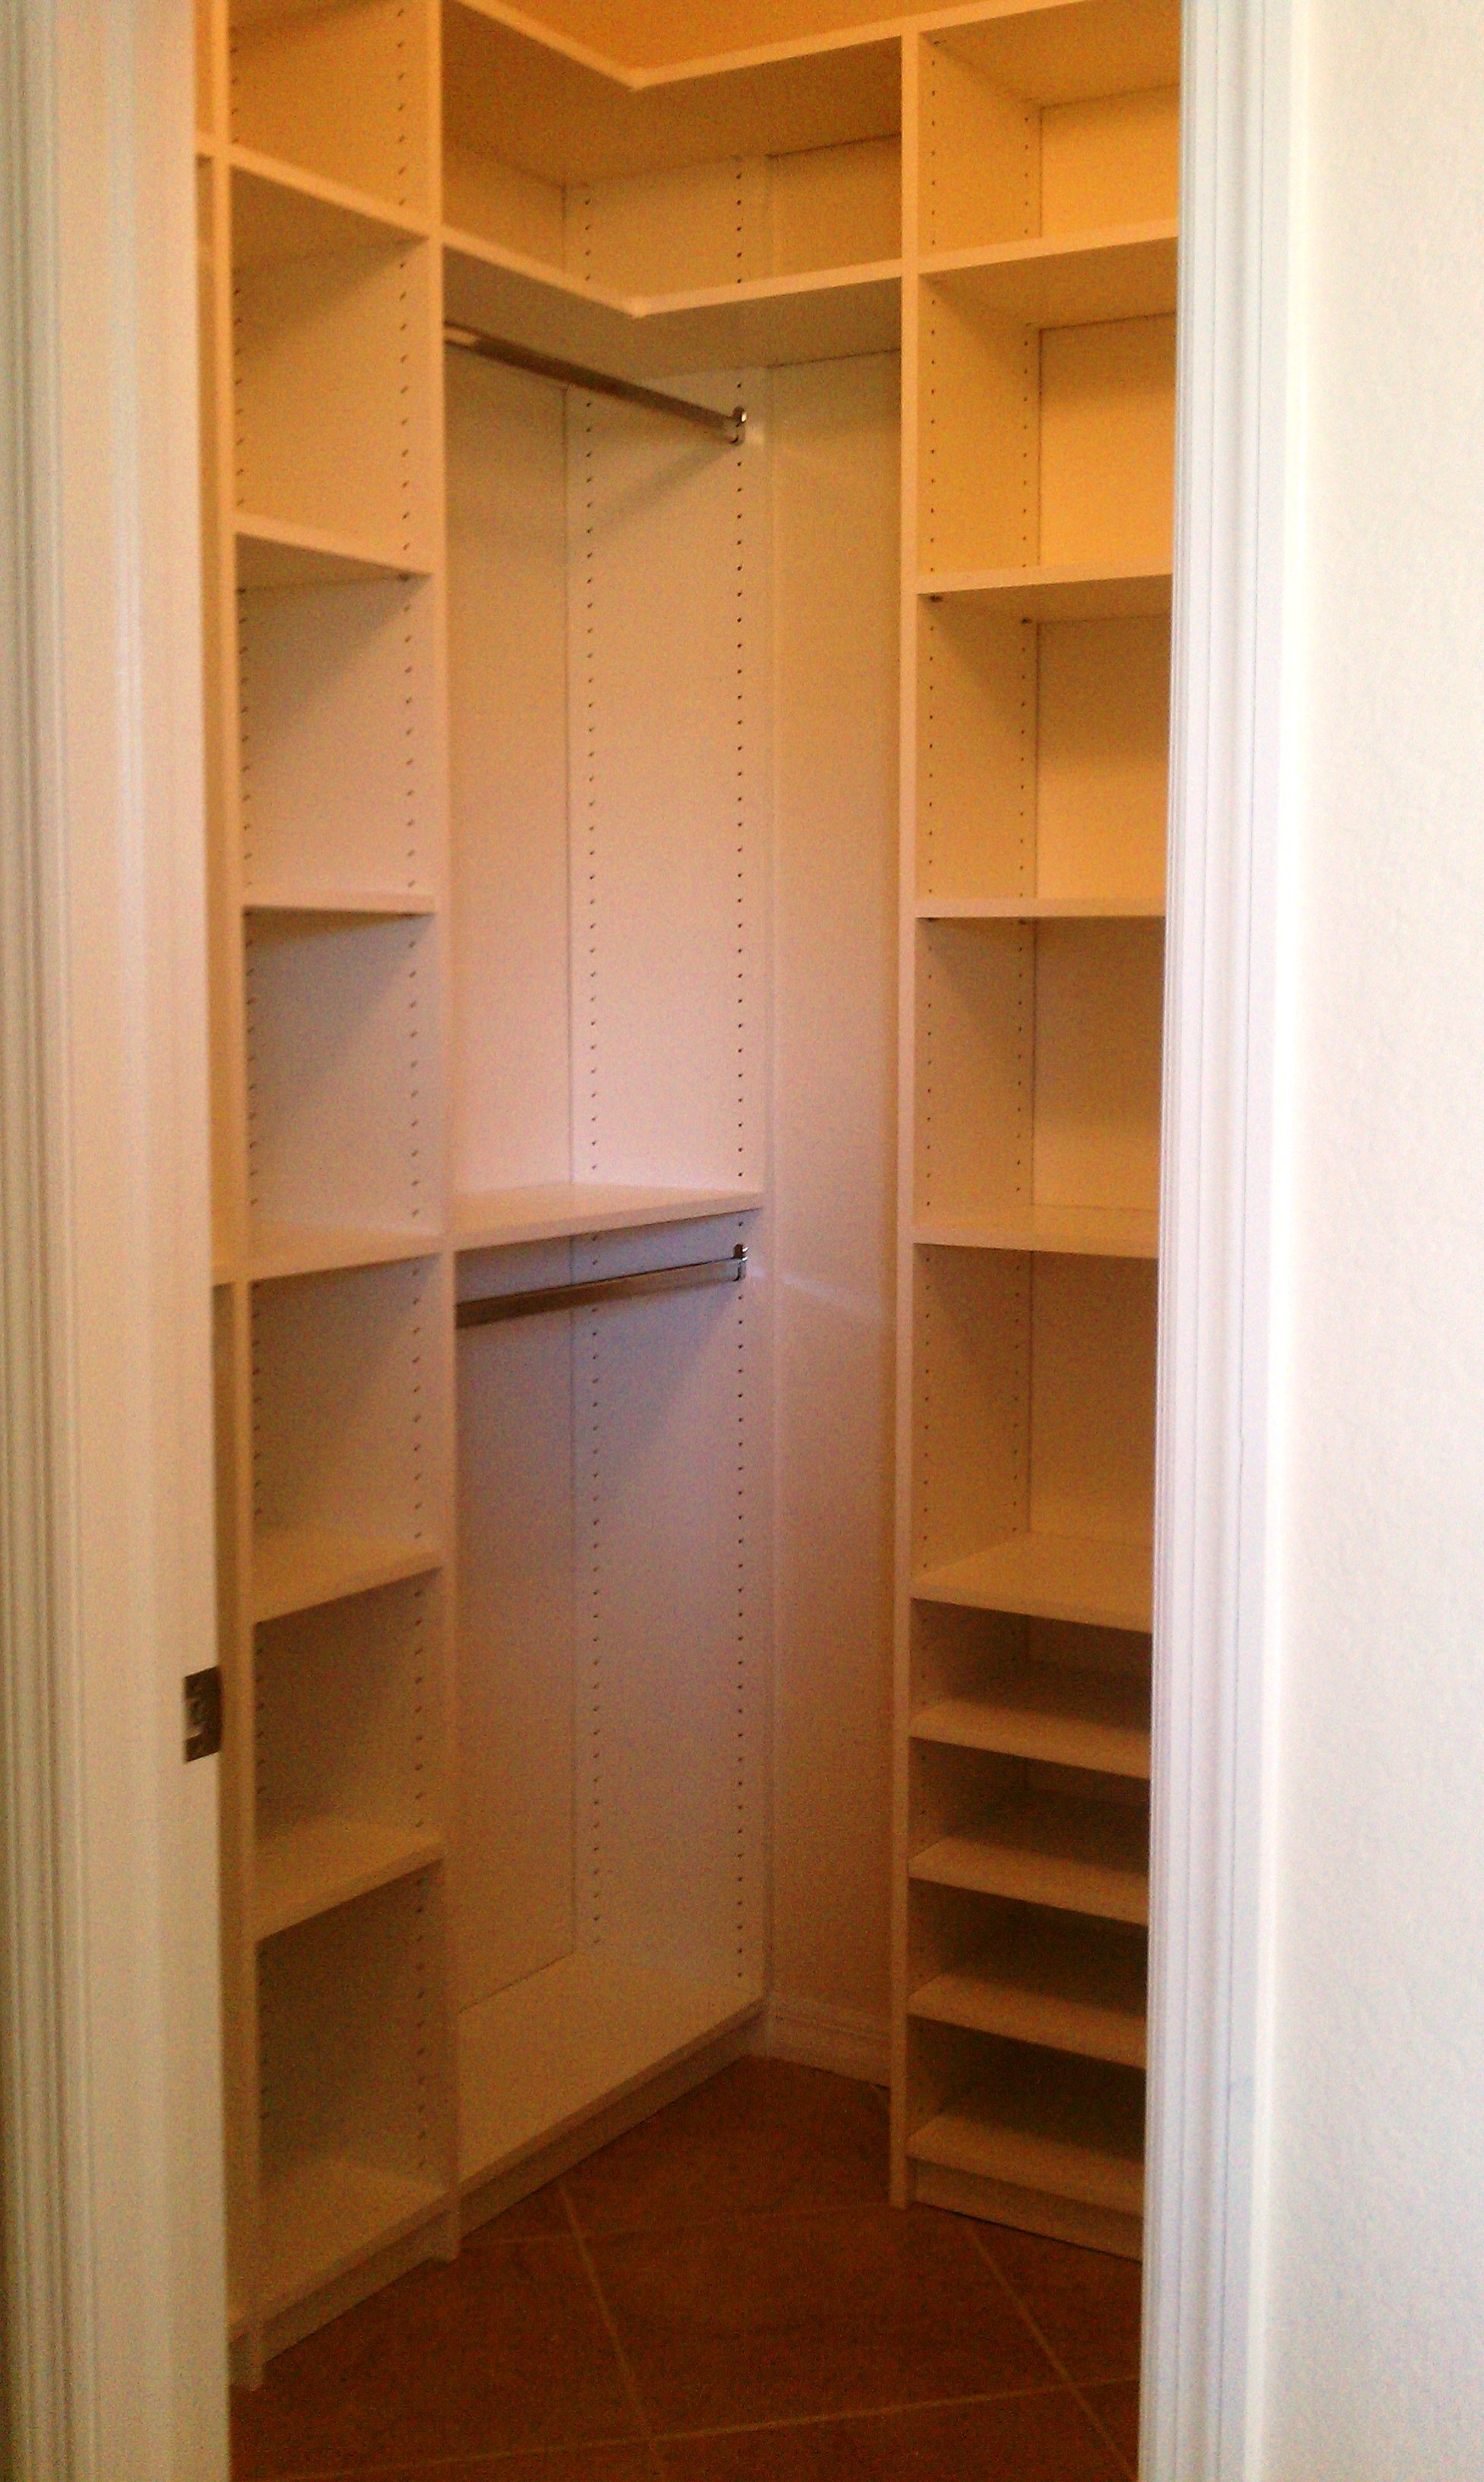 Diy Closet Organizer Ideas That Can Make Your Room